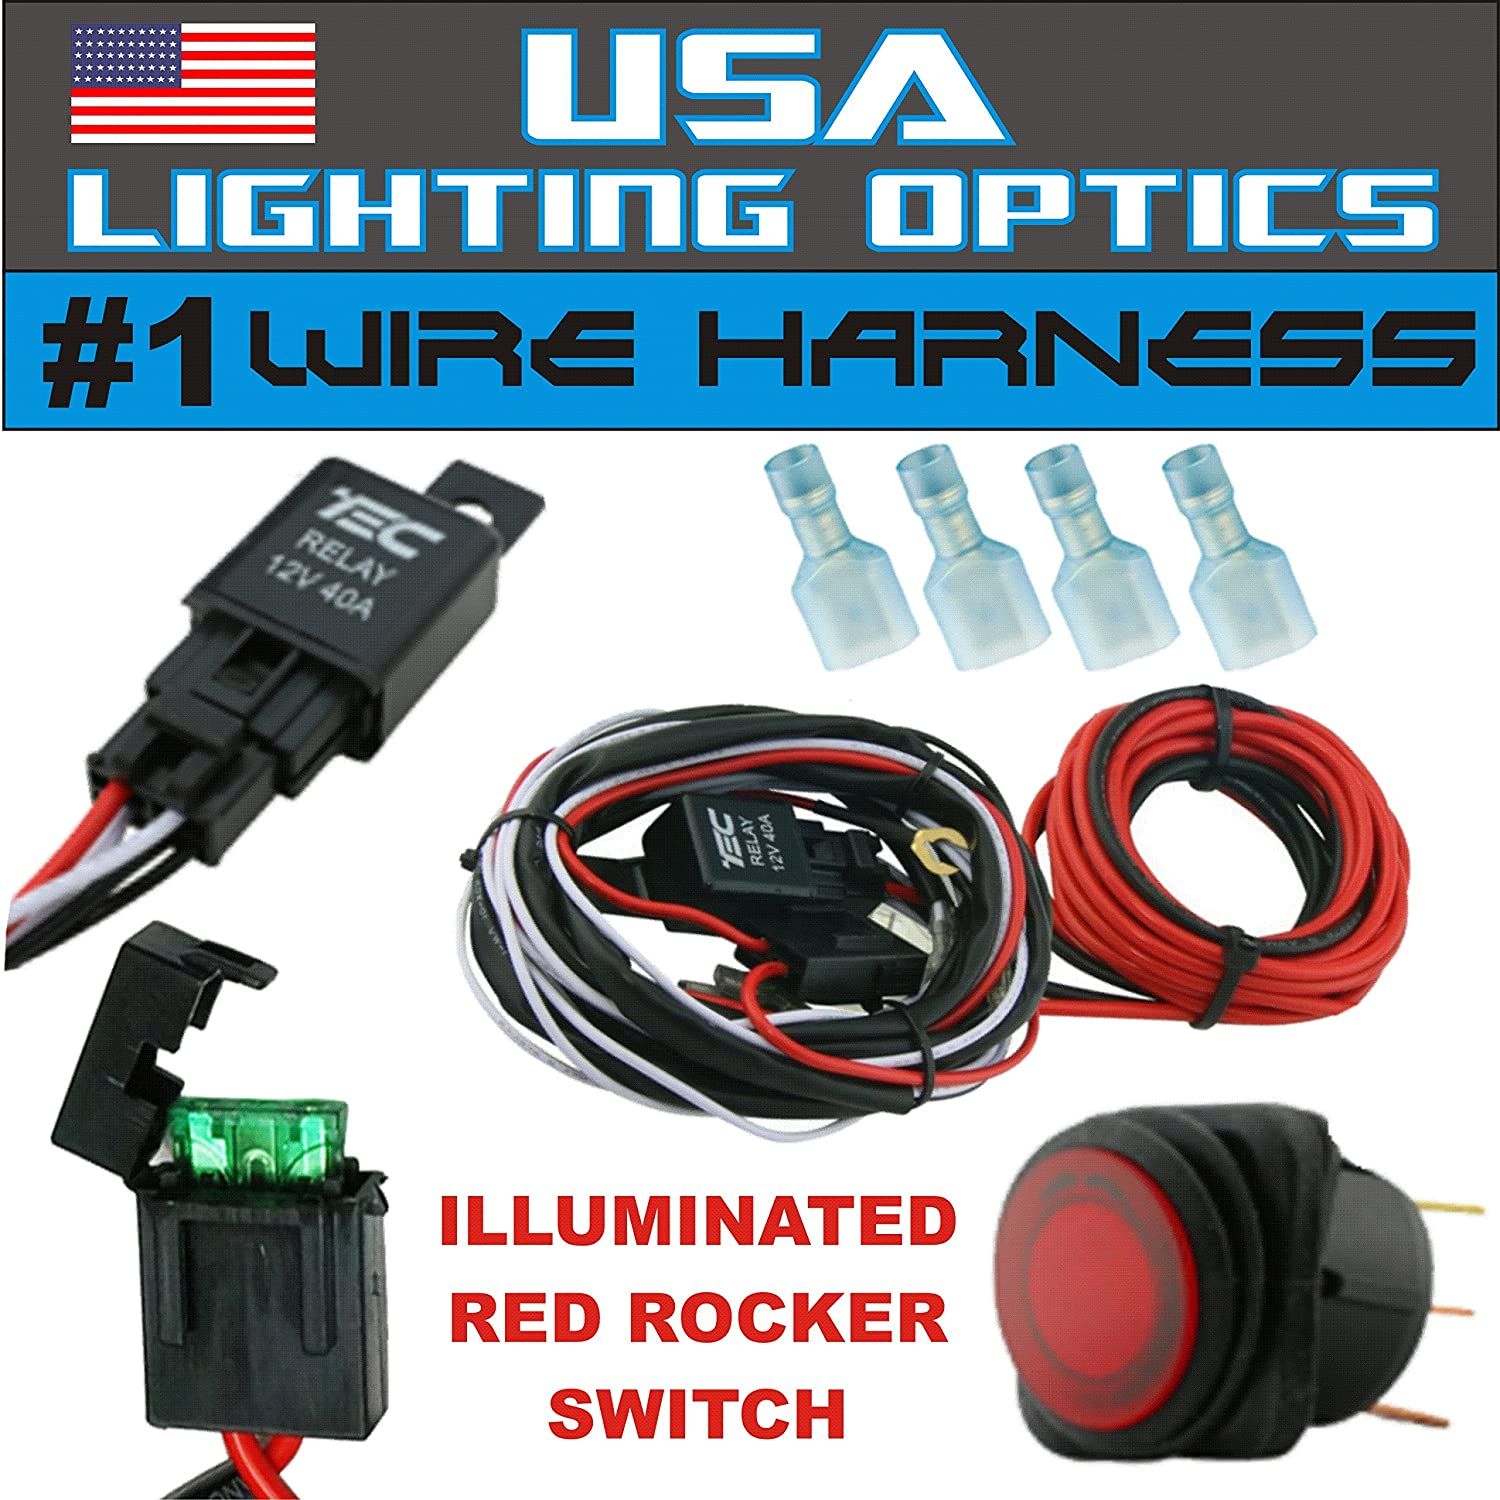 A1dMKlBH4WL._SL1500_ amazon com 1 40 amp universal wiring harness for off road led cyclops light bar wiring harness kit at readyjetset.co